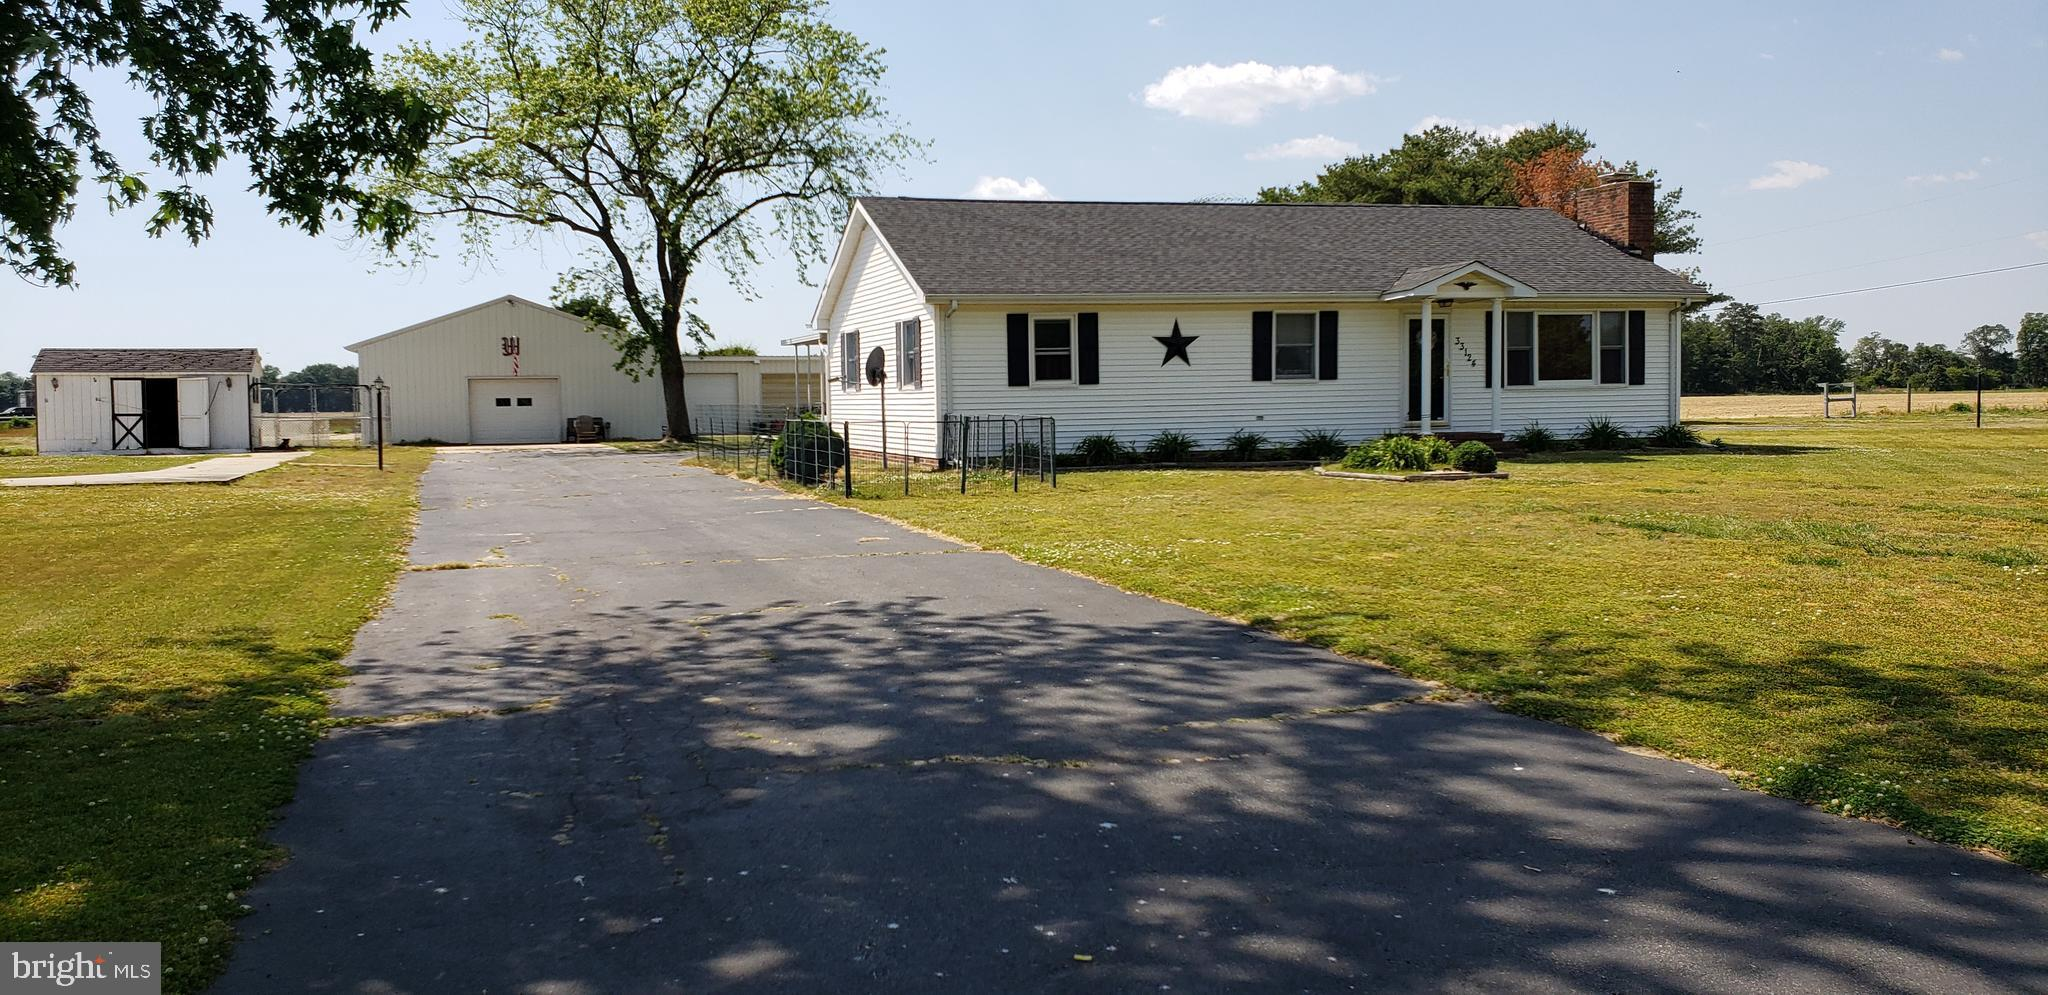 Lots of possibilities with this property! 5.06-acre parcel with a 4 bedroom 2.5 bathroom home.  Hors